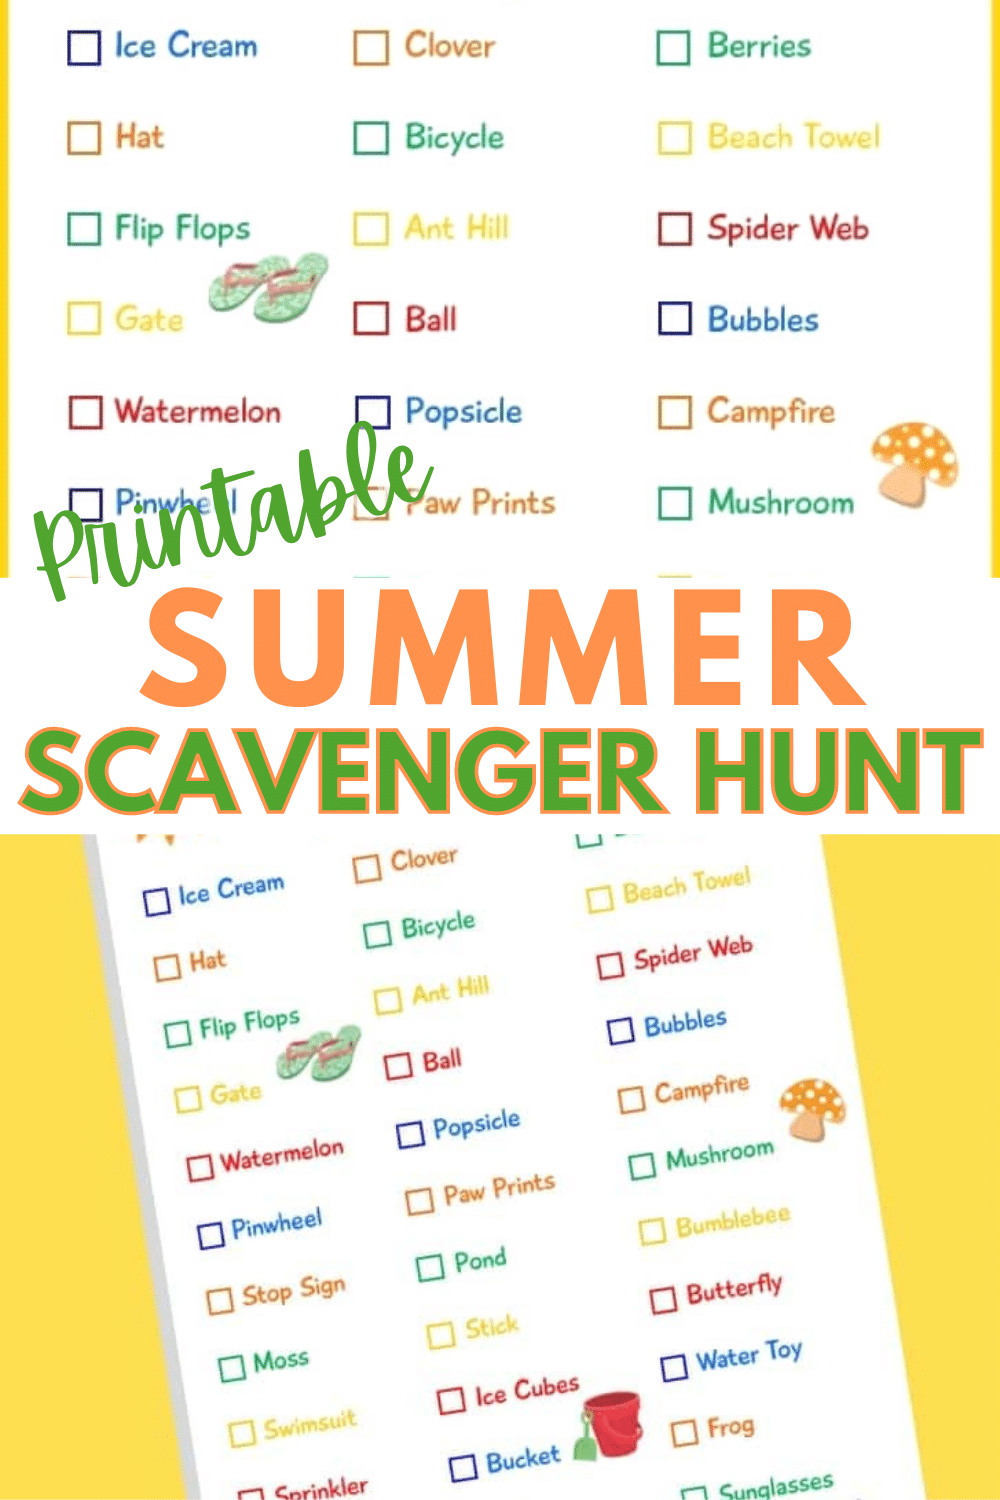 This summer scavenger hunt is the perfect way to motivate kids to get outside. Most of the items are easily found in your neighborhood. #summerfun #summeractivity #outdooractivity #scavengerhunt via @wondermomwannab